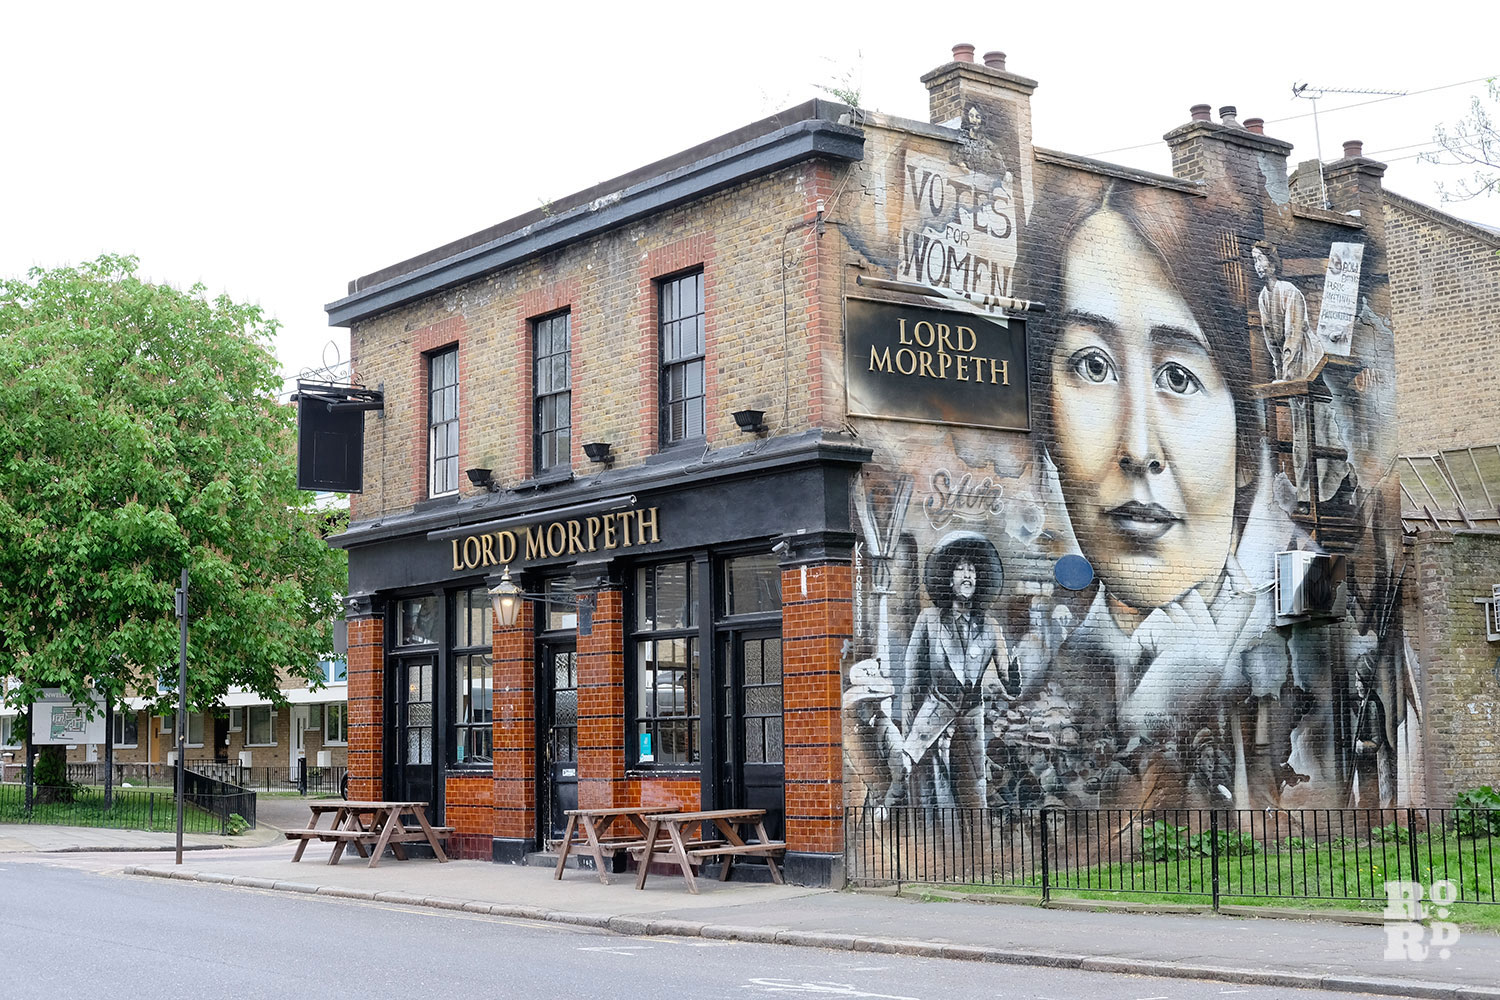 Lord Morpeth pub Ford Road Bow with Suffragettes mural on side of building